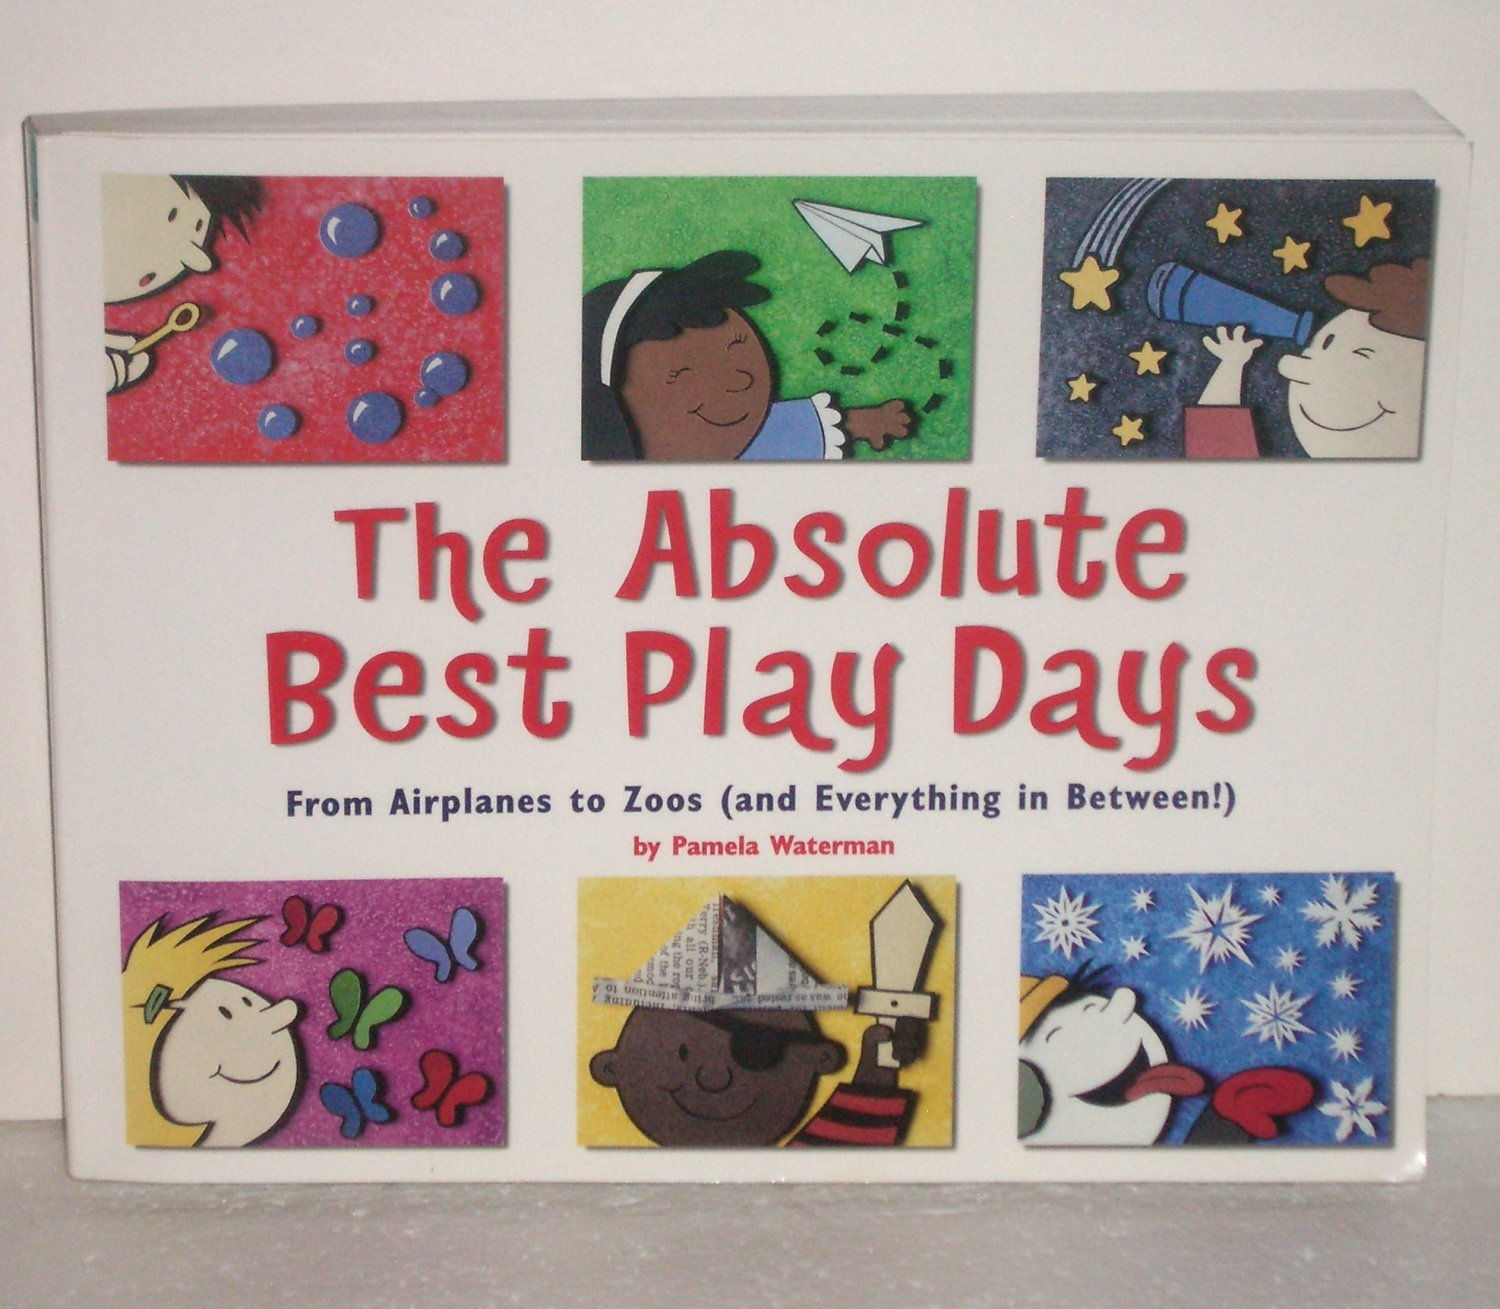 The Absolute Best Play Days Pamela Waterman From Airplanes to Zoos 1999 Parenting, Childcare